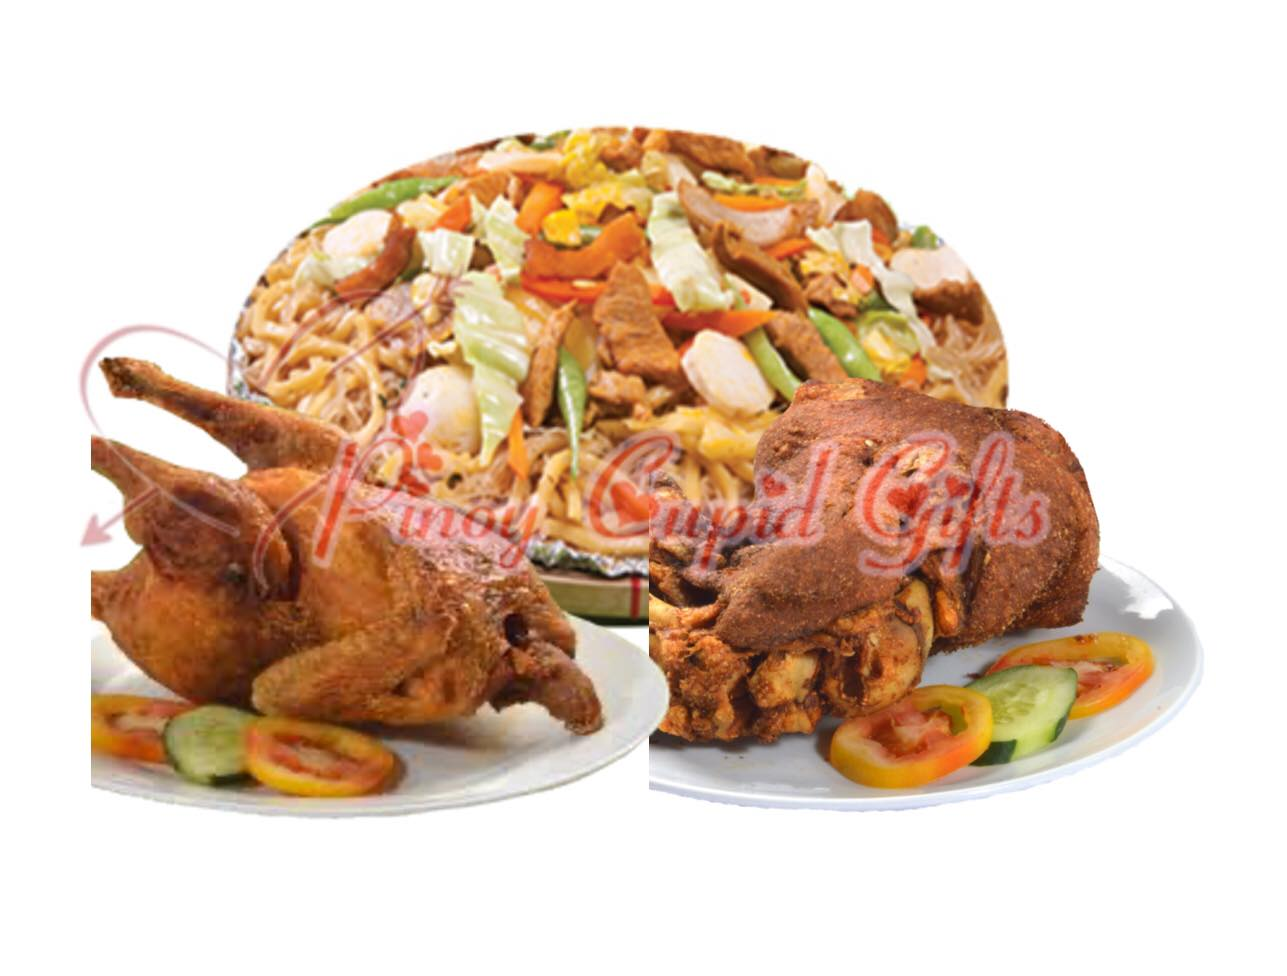 Pancit Miki-Bihon (serves 6), Whole Fried Chicken, Crispy Pata-Regular